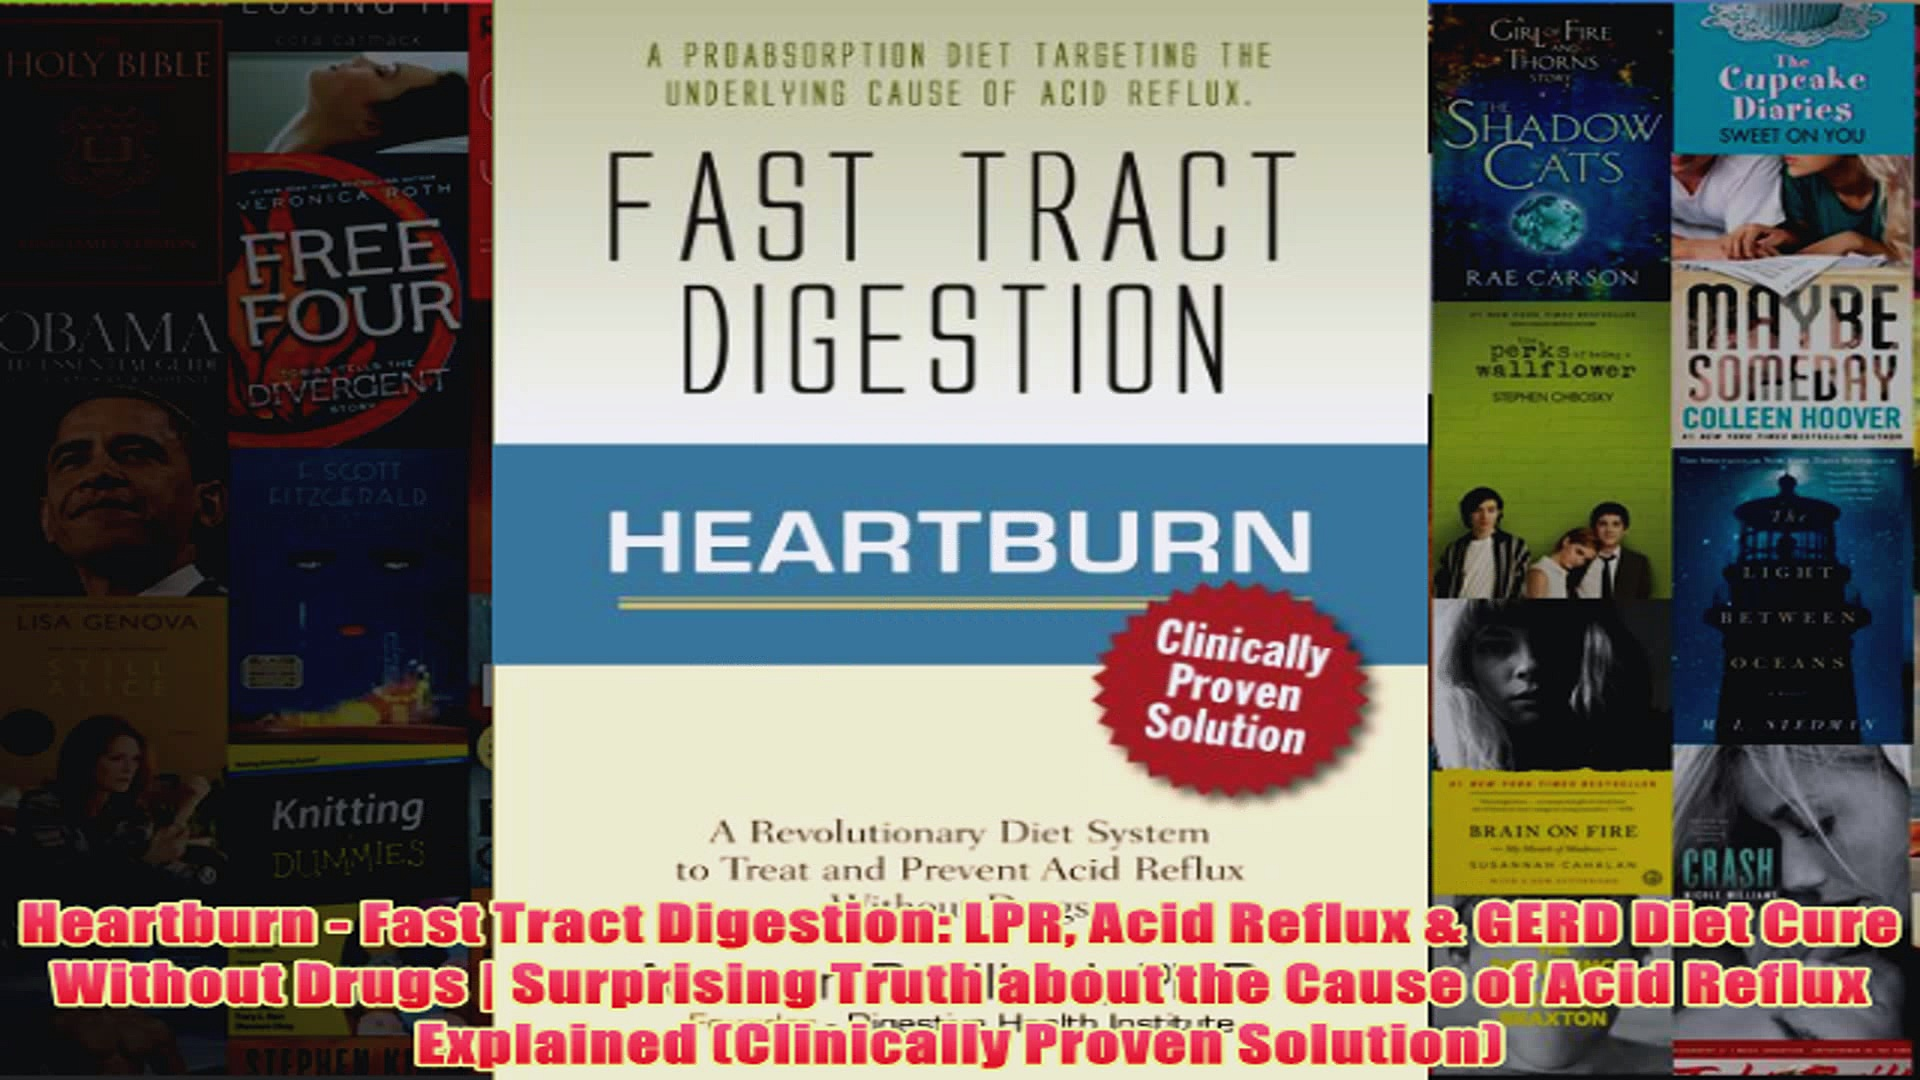 Download PDF  Heartburn  Fast Tract Digestion LPR Acid Reflux  GERD Diet Cure Without Drugs  FULL FREE